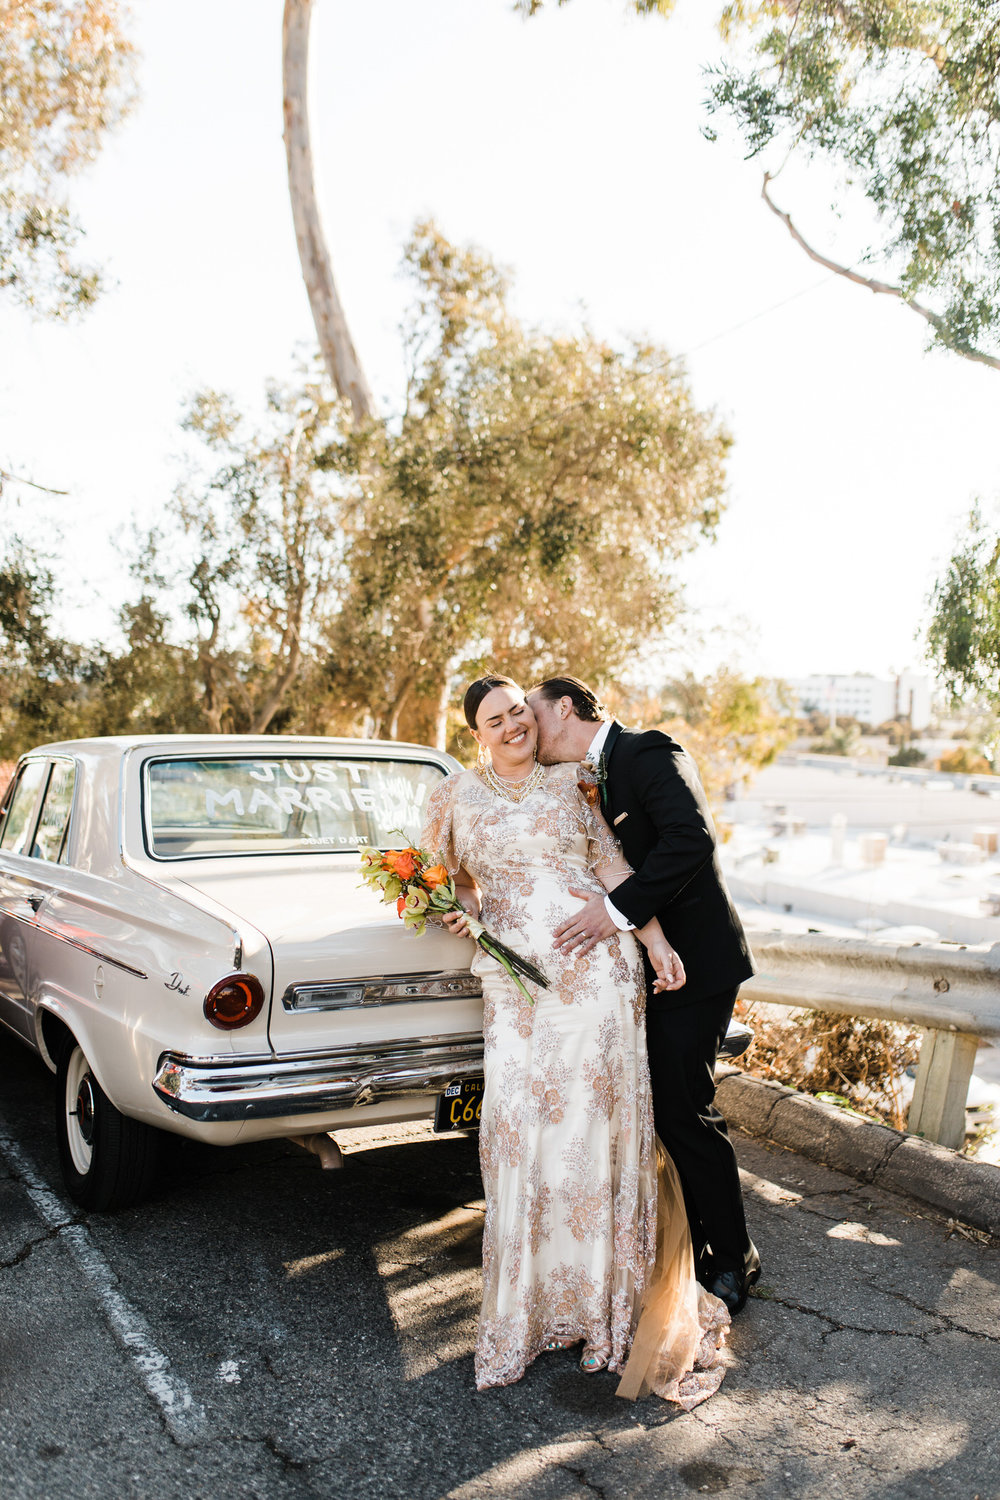 Martina&Niko-Wedding-Mission-San-Buenaventura-Clarisse-Rae-Southern-California-Wedding-Photographer_591